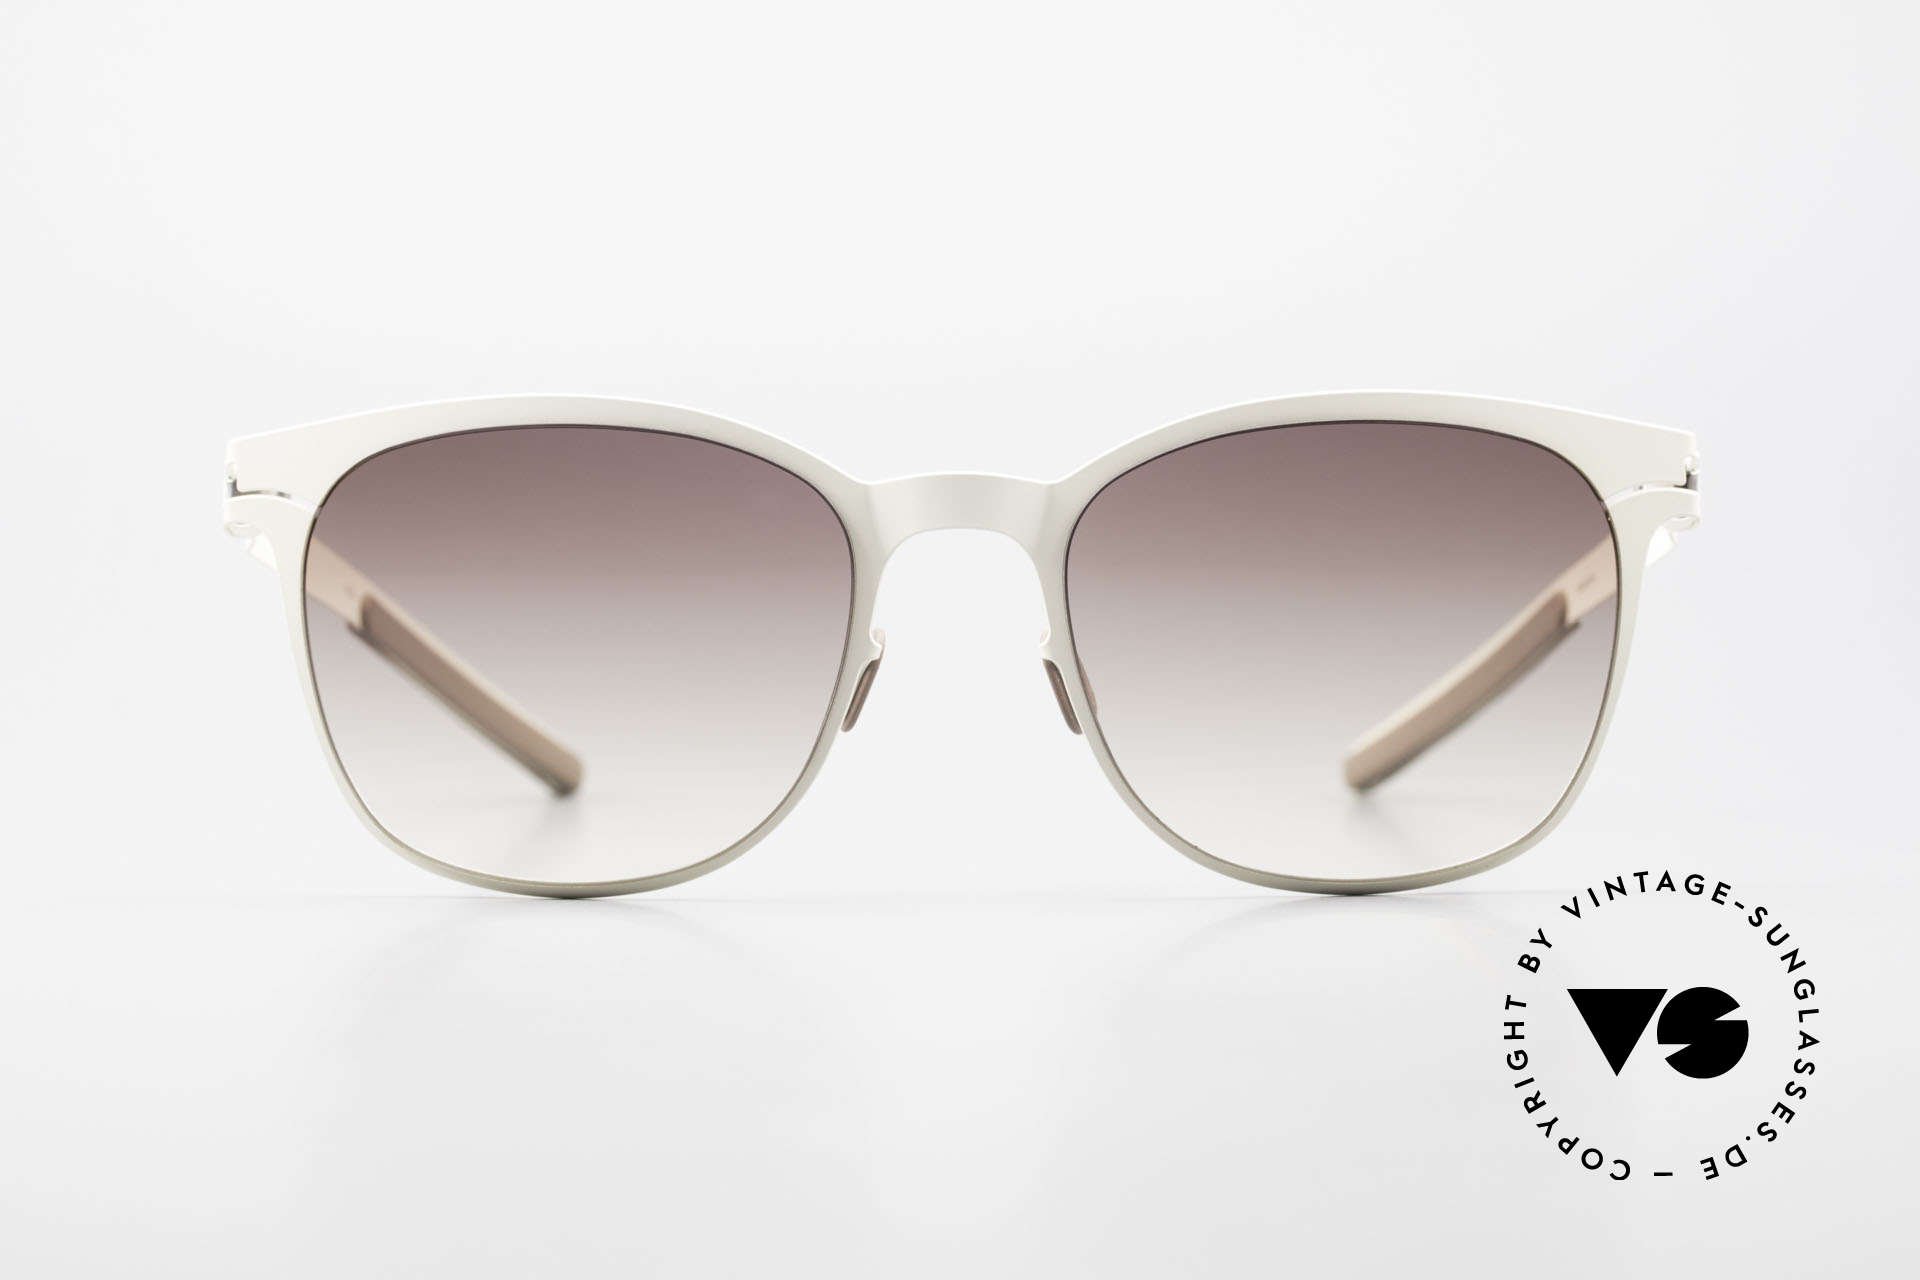 Mykita Greta Ladies Sunglasses From 2009, MYKITA: the youngest brand in our vintage collection, Made for Women